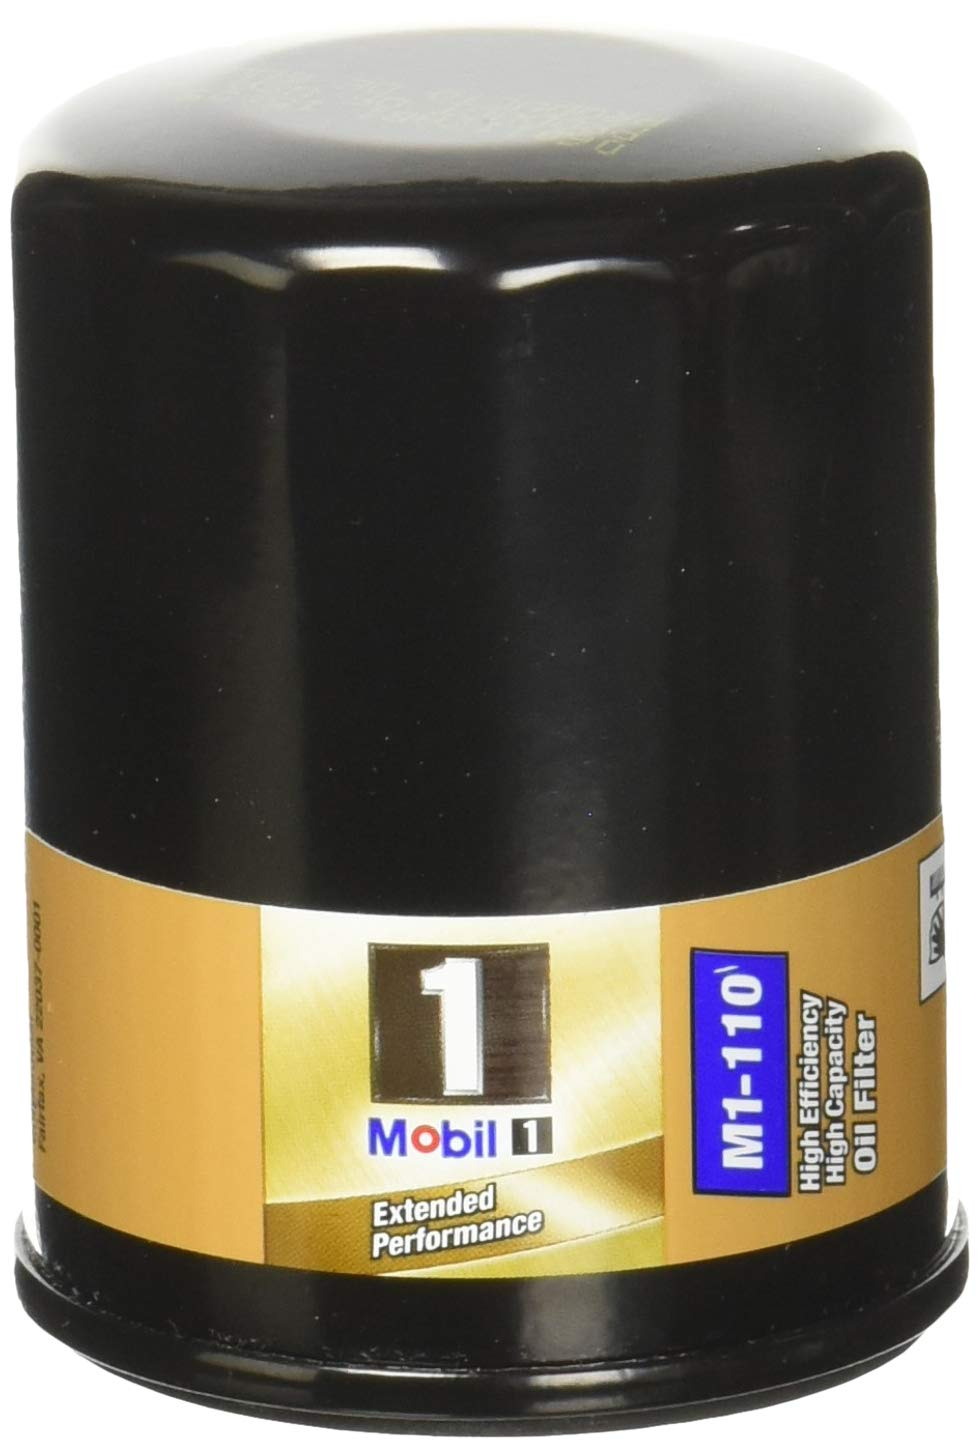 Mobil M1 110 Extended Performance Filter